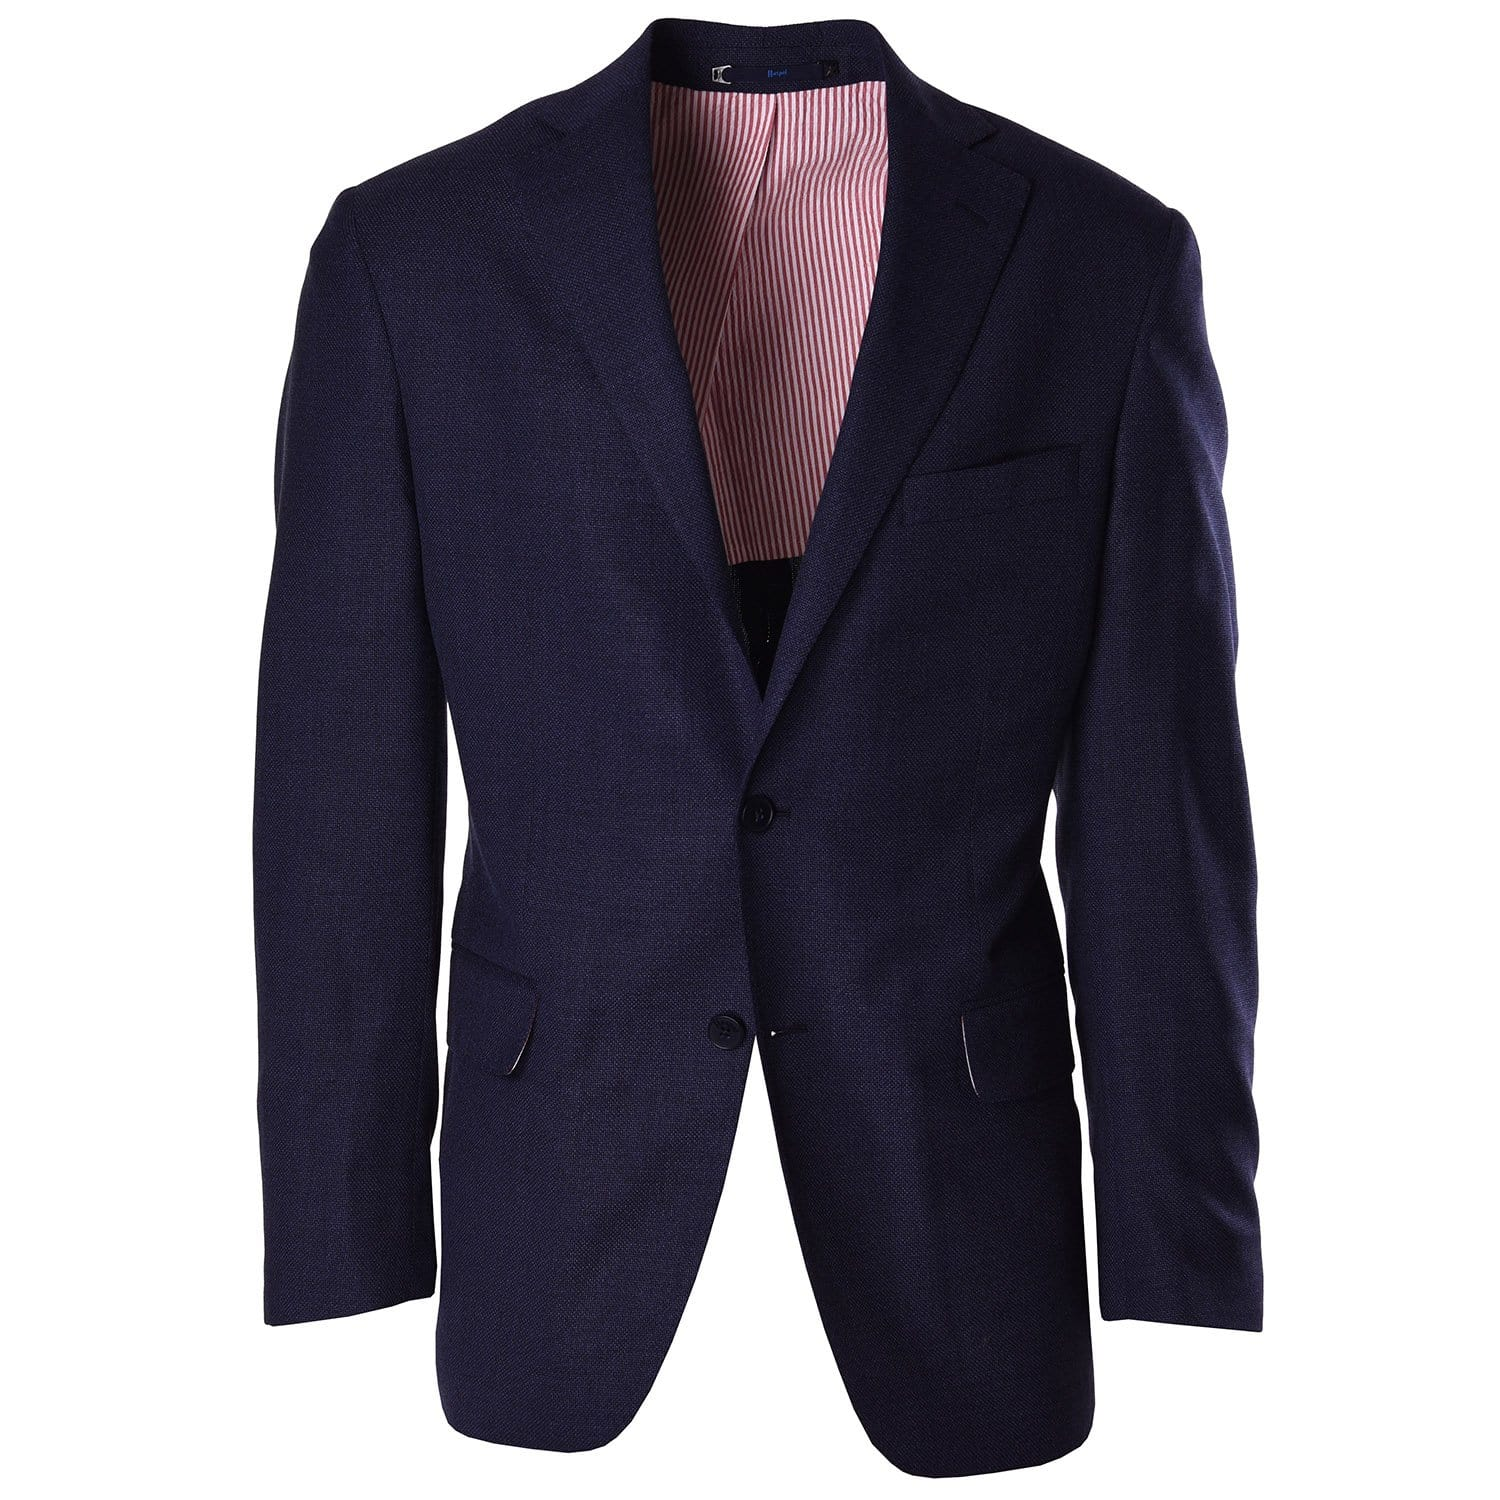 Textured Navy Blazer - Haspel Clothing